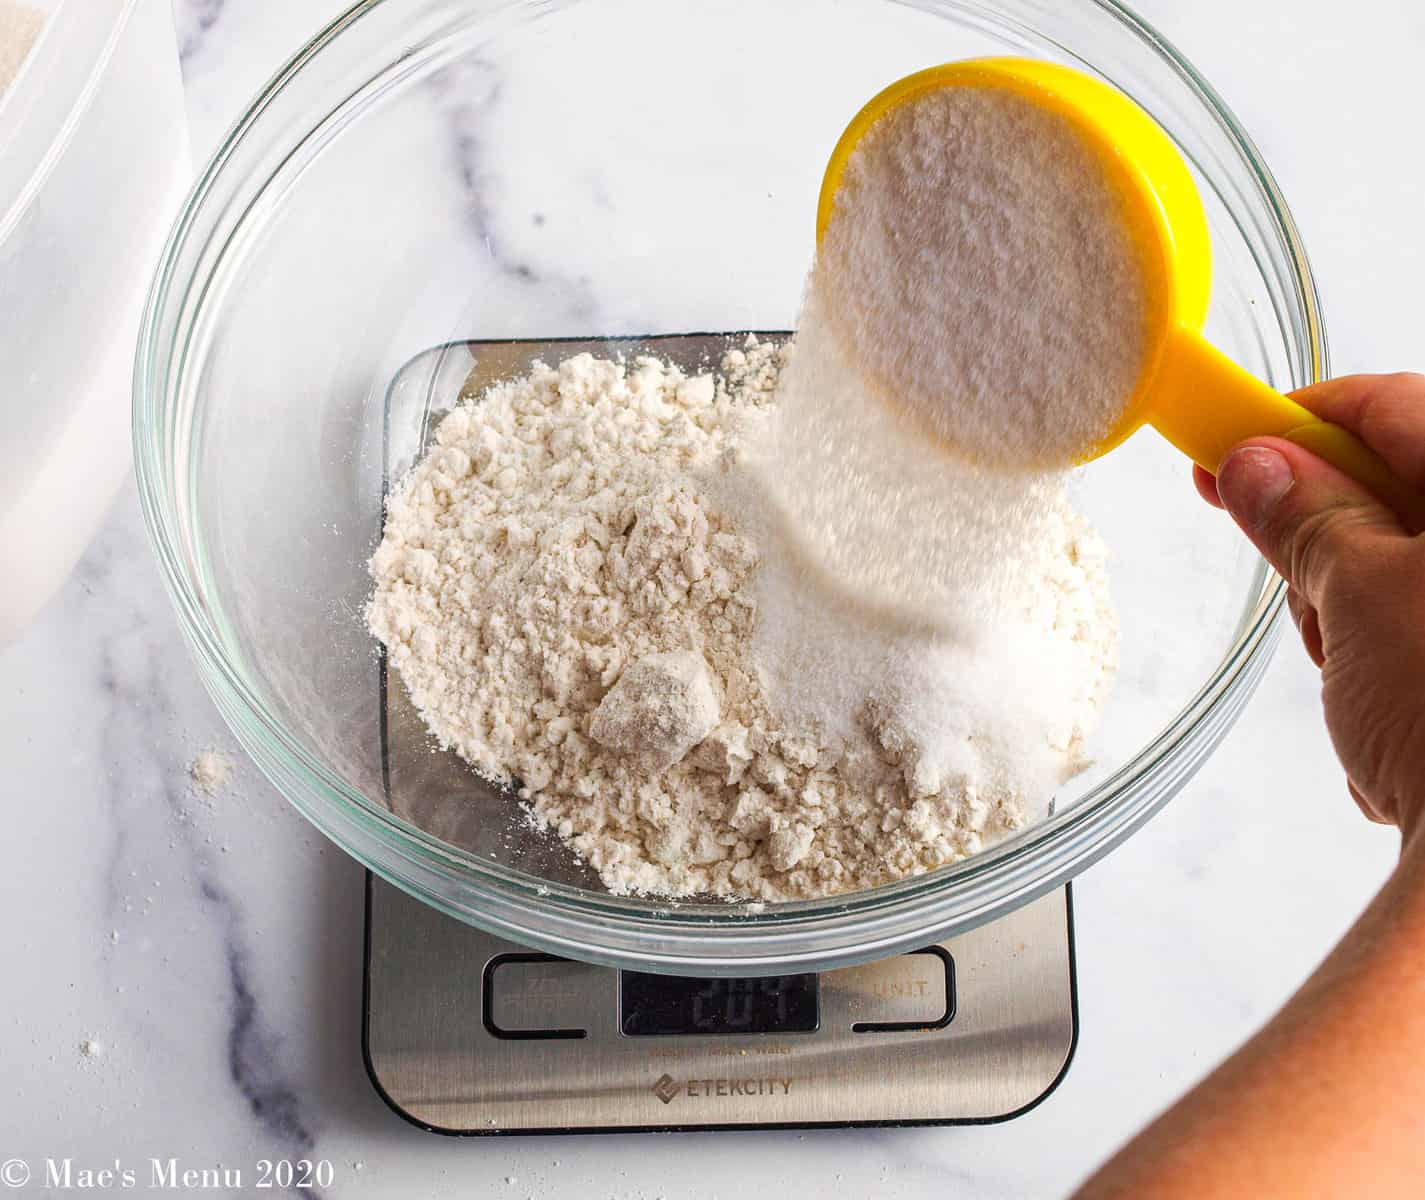 Pouring sugar into the flour in the bowl